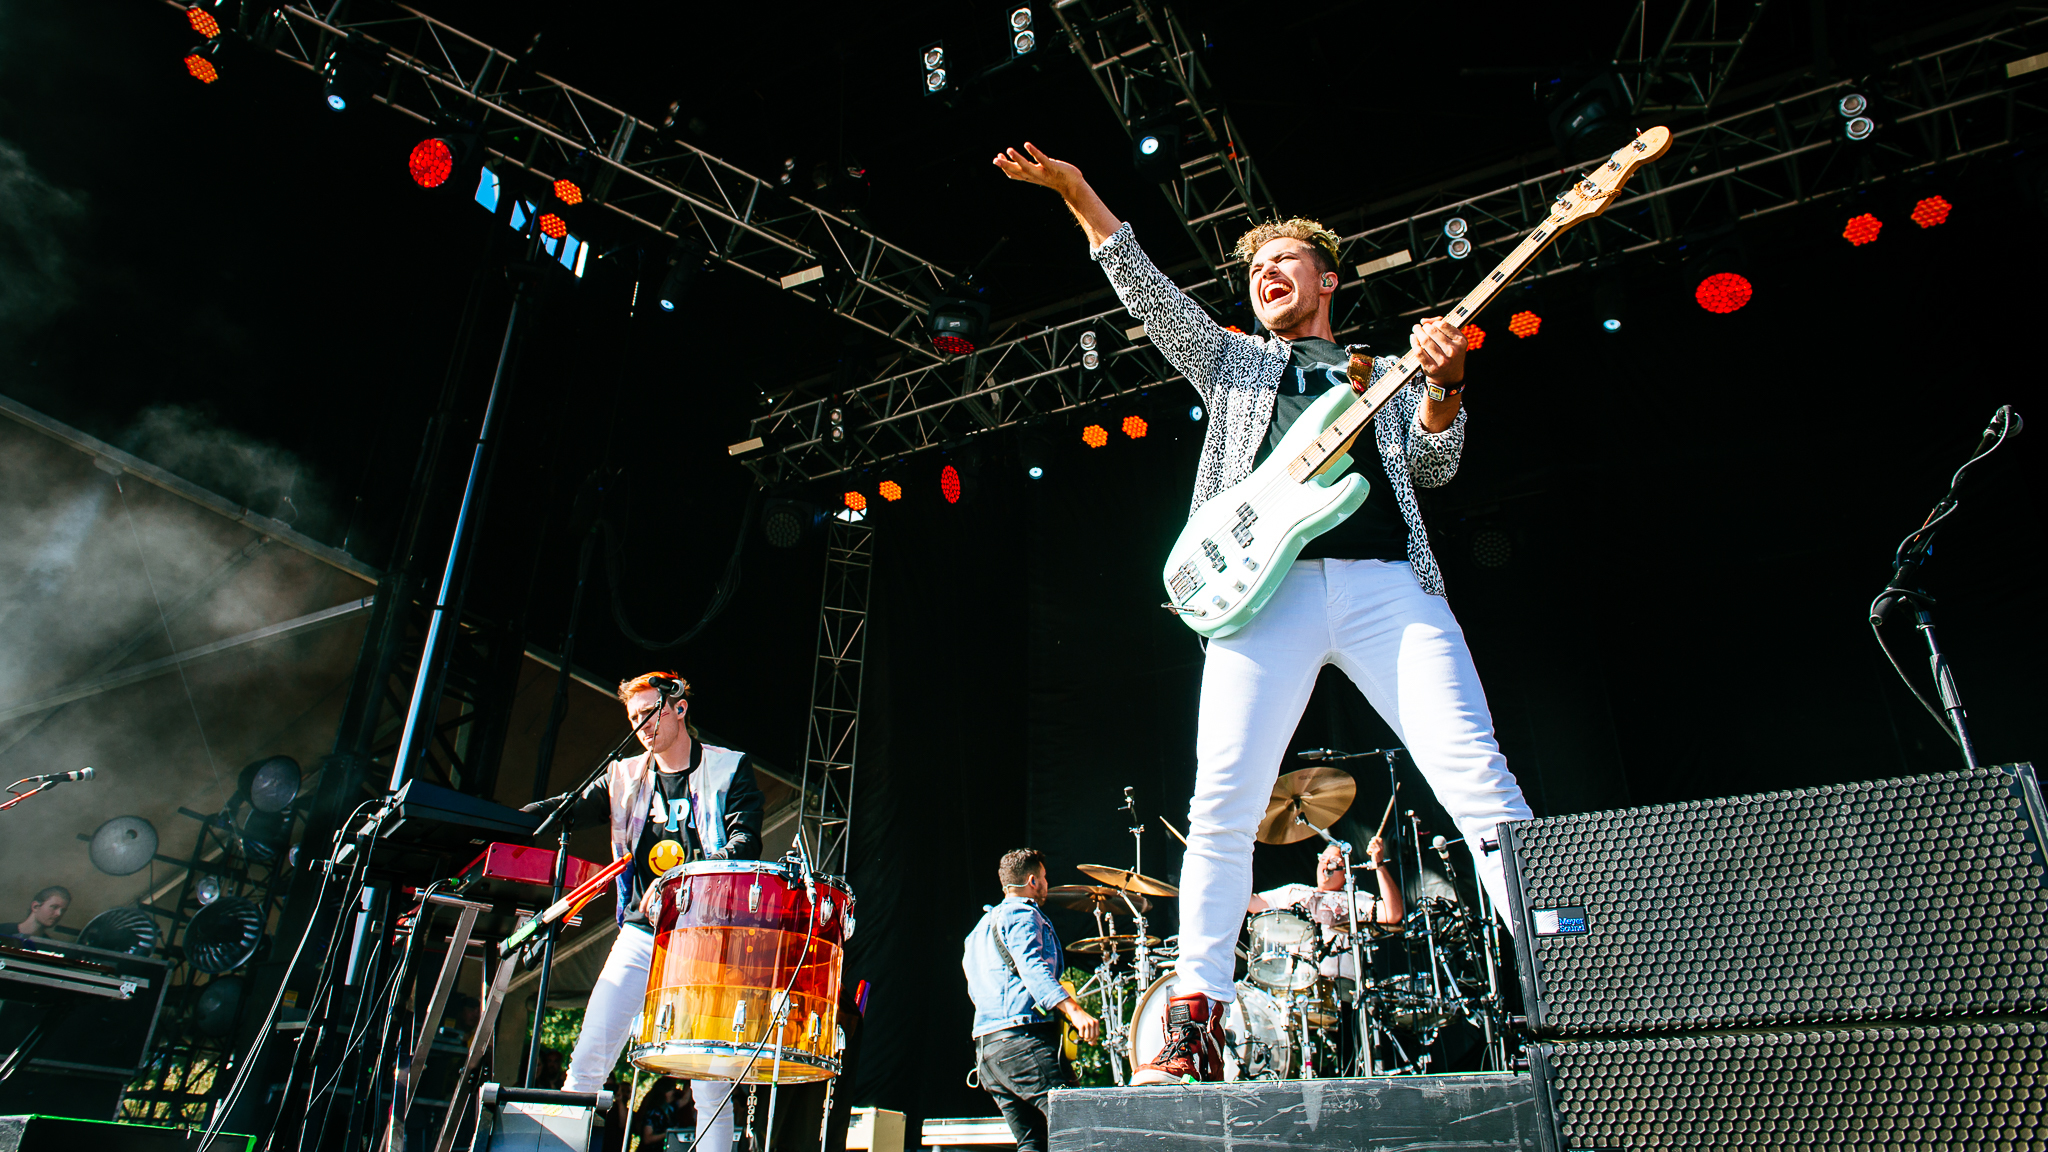 Walk the Moon turned in a set in front of a crowd of thousands at Lolllapalooza on August 1, 2015.